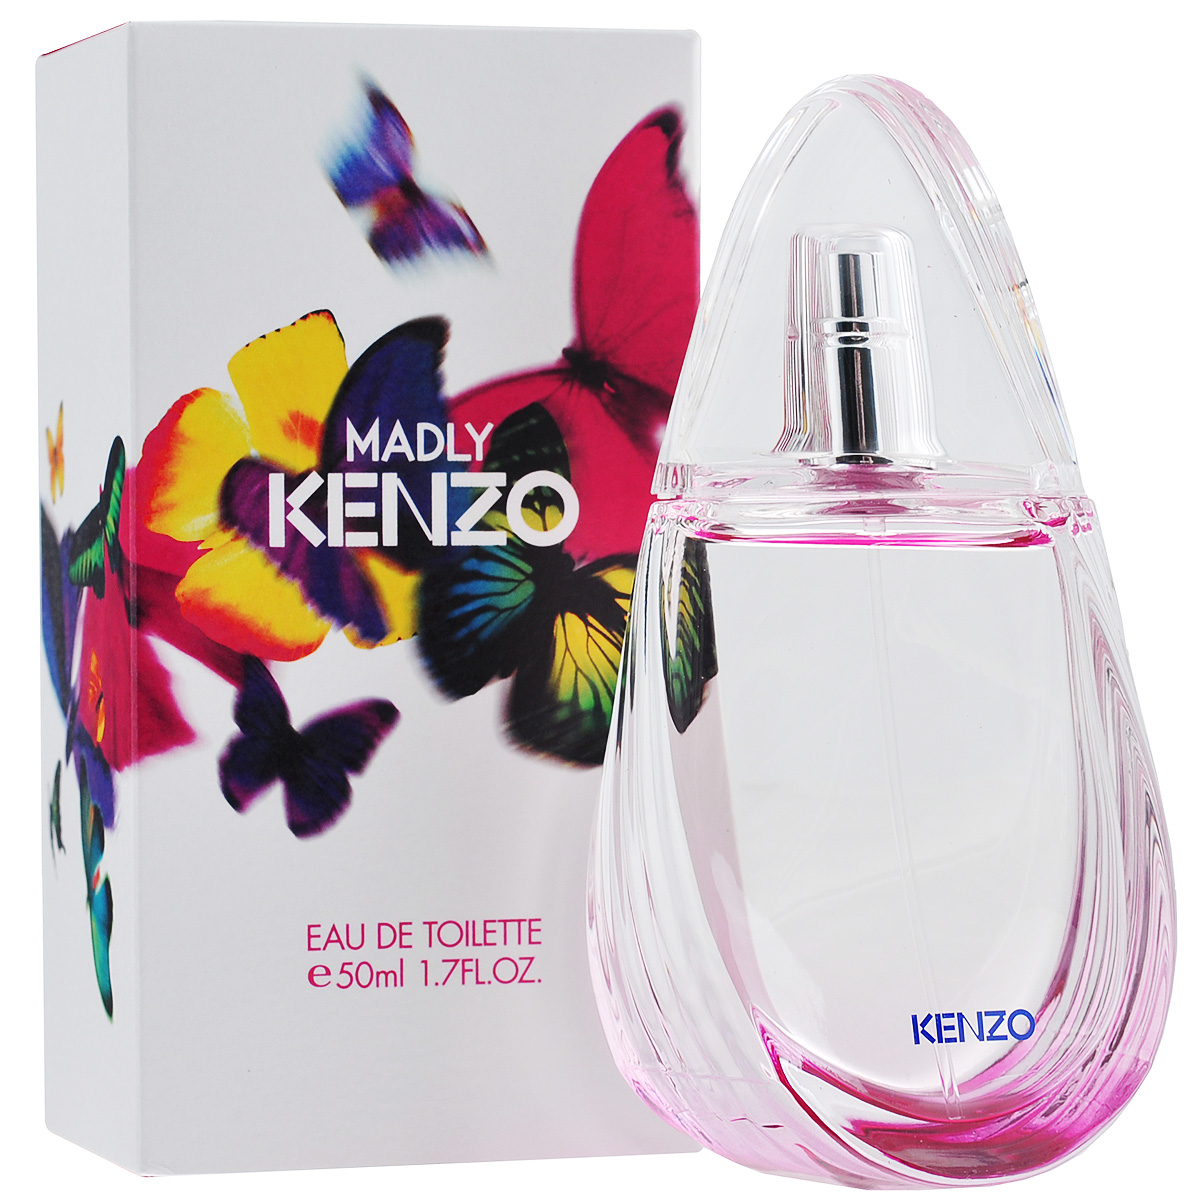 Kenzo Туалетная вода Madly, женская, 50 мл kenzo madly kenzo oud collection